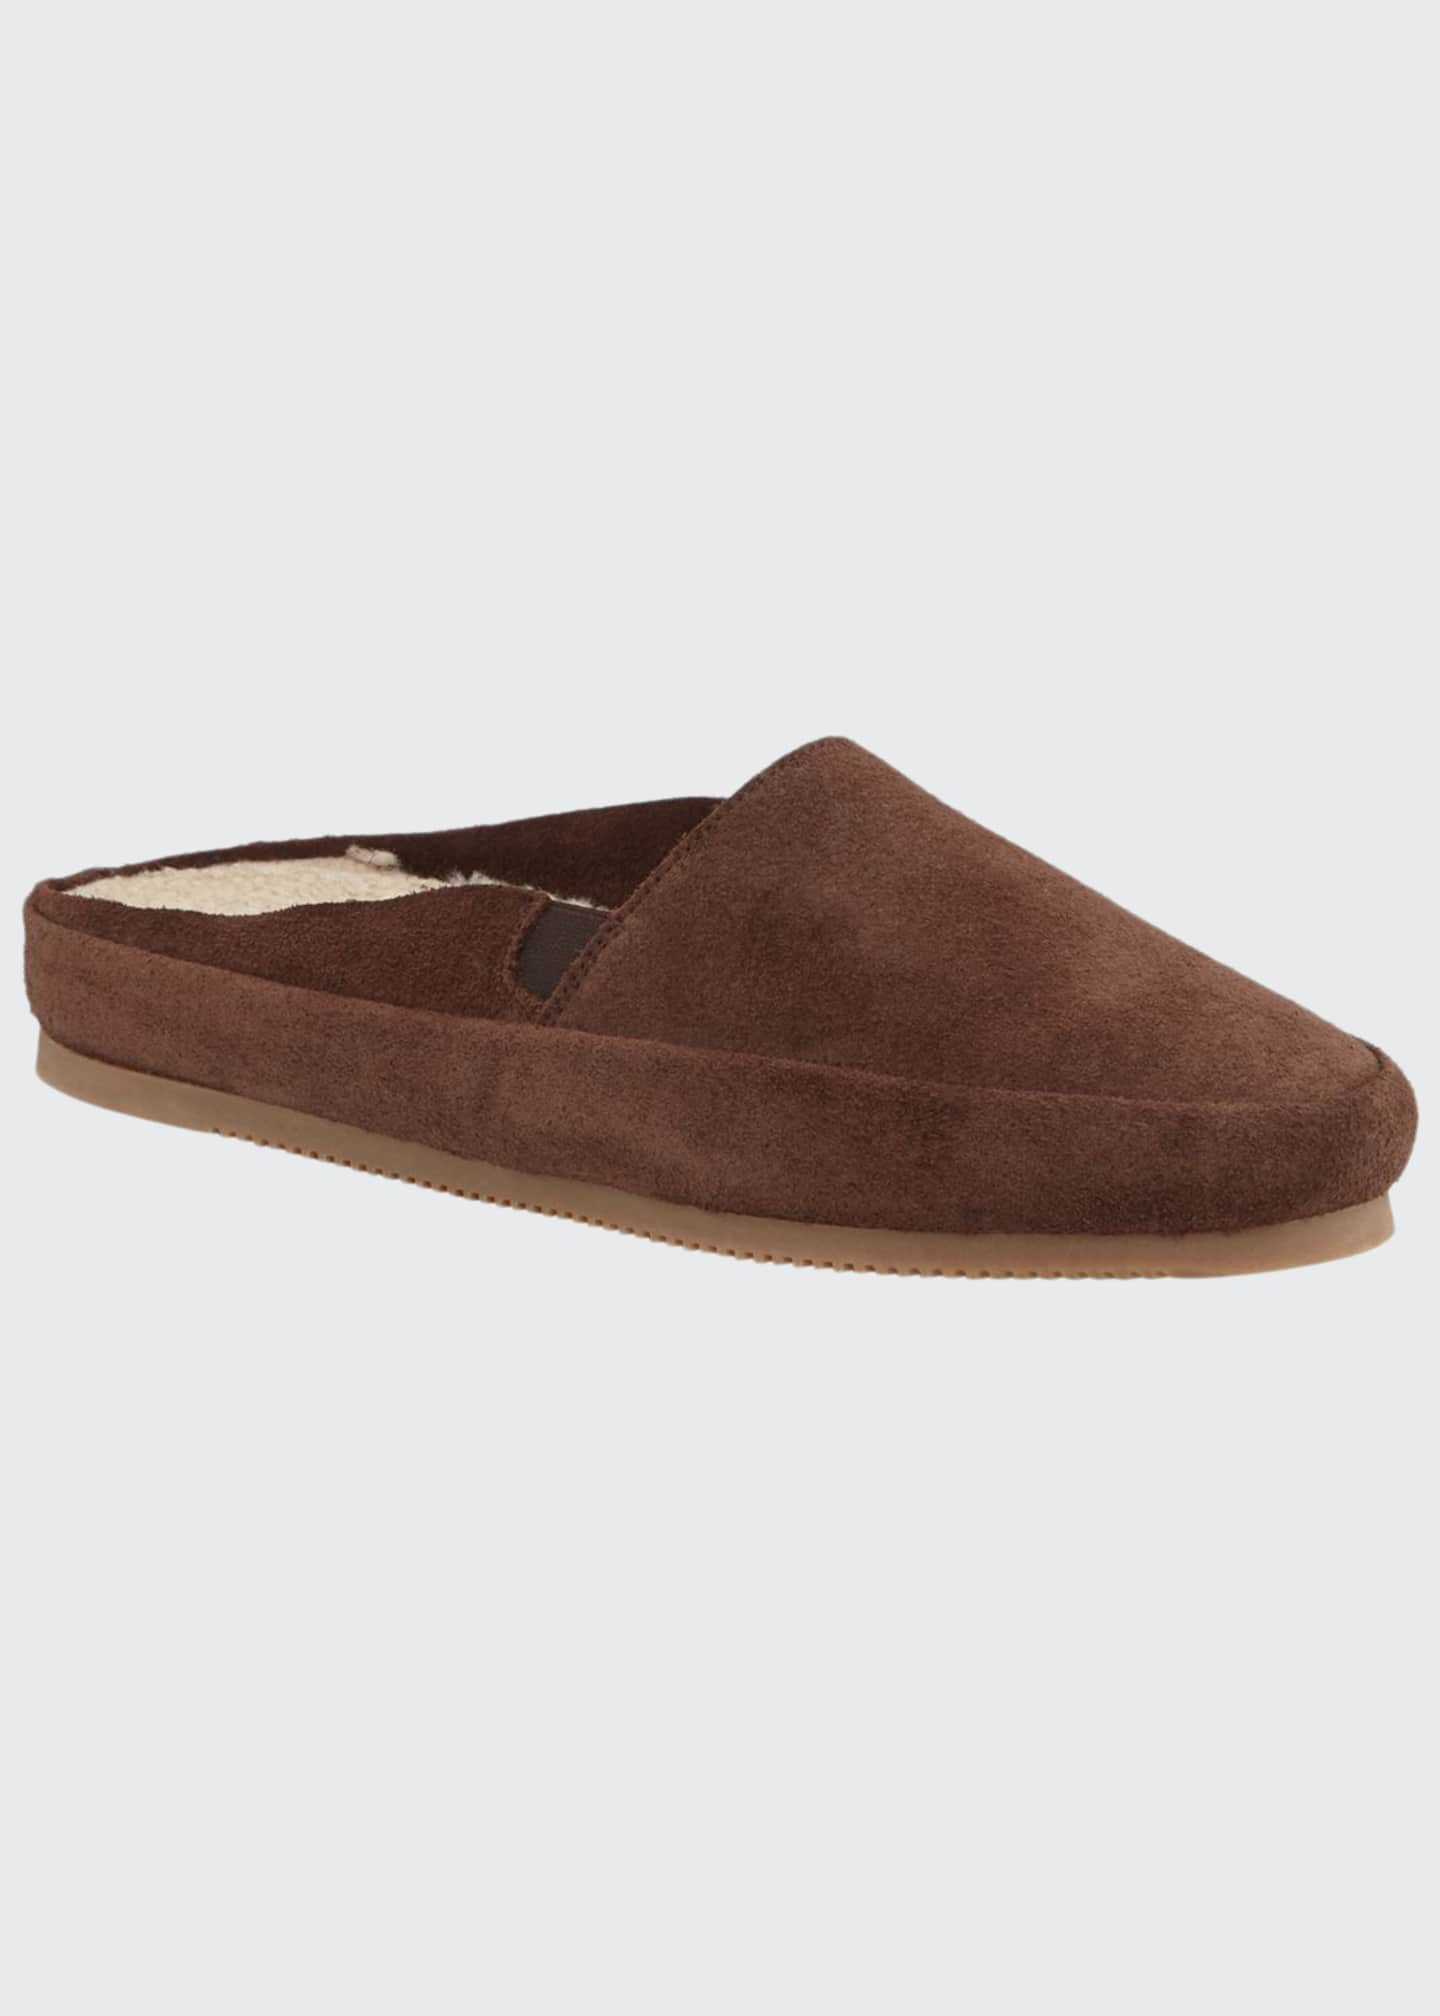 Image 1 of 3: Men's Suede Mule Slippers w/ Shearling Lining